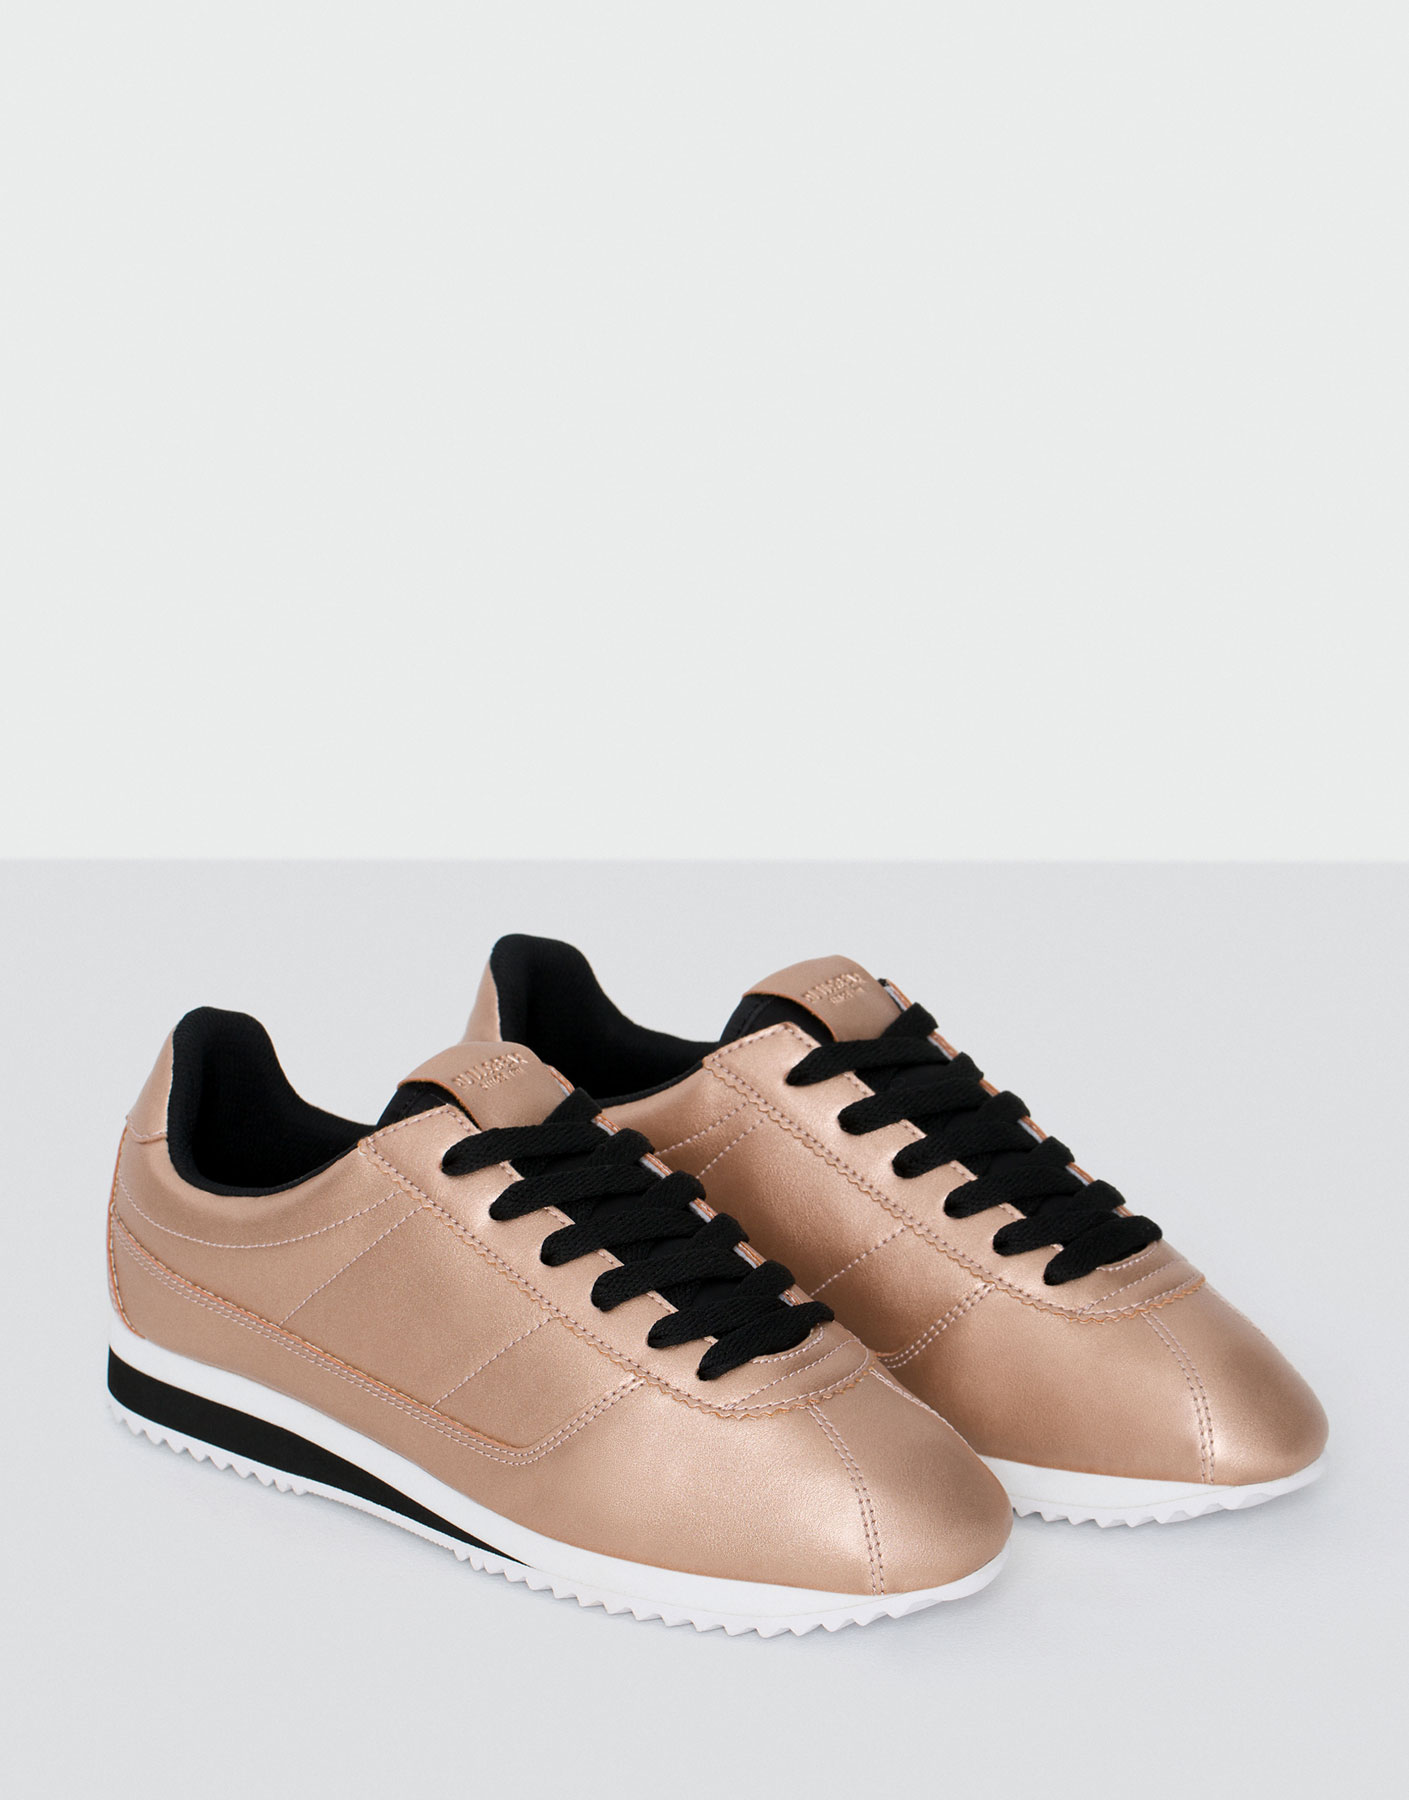 Metallic street sneakers